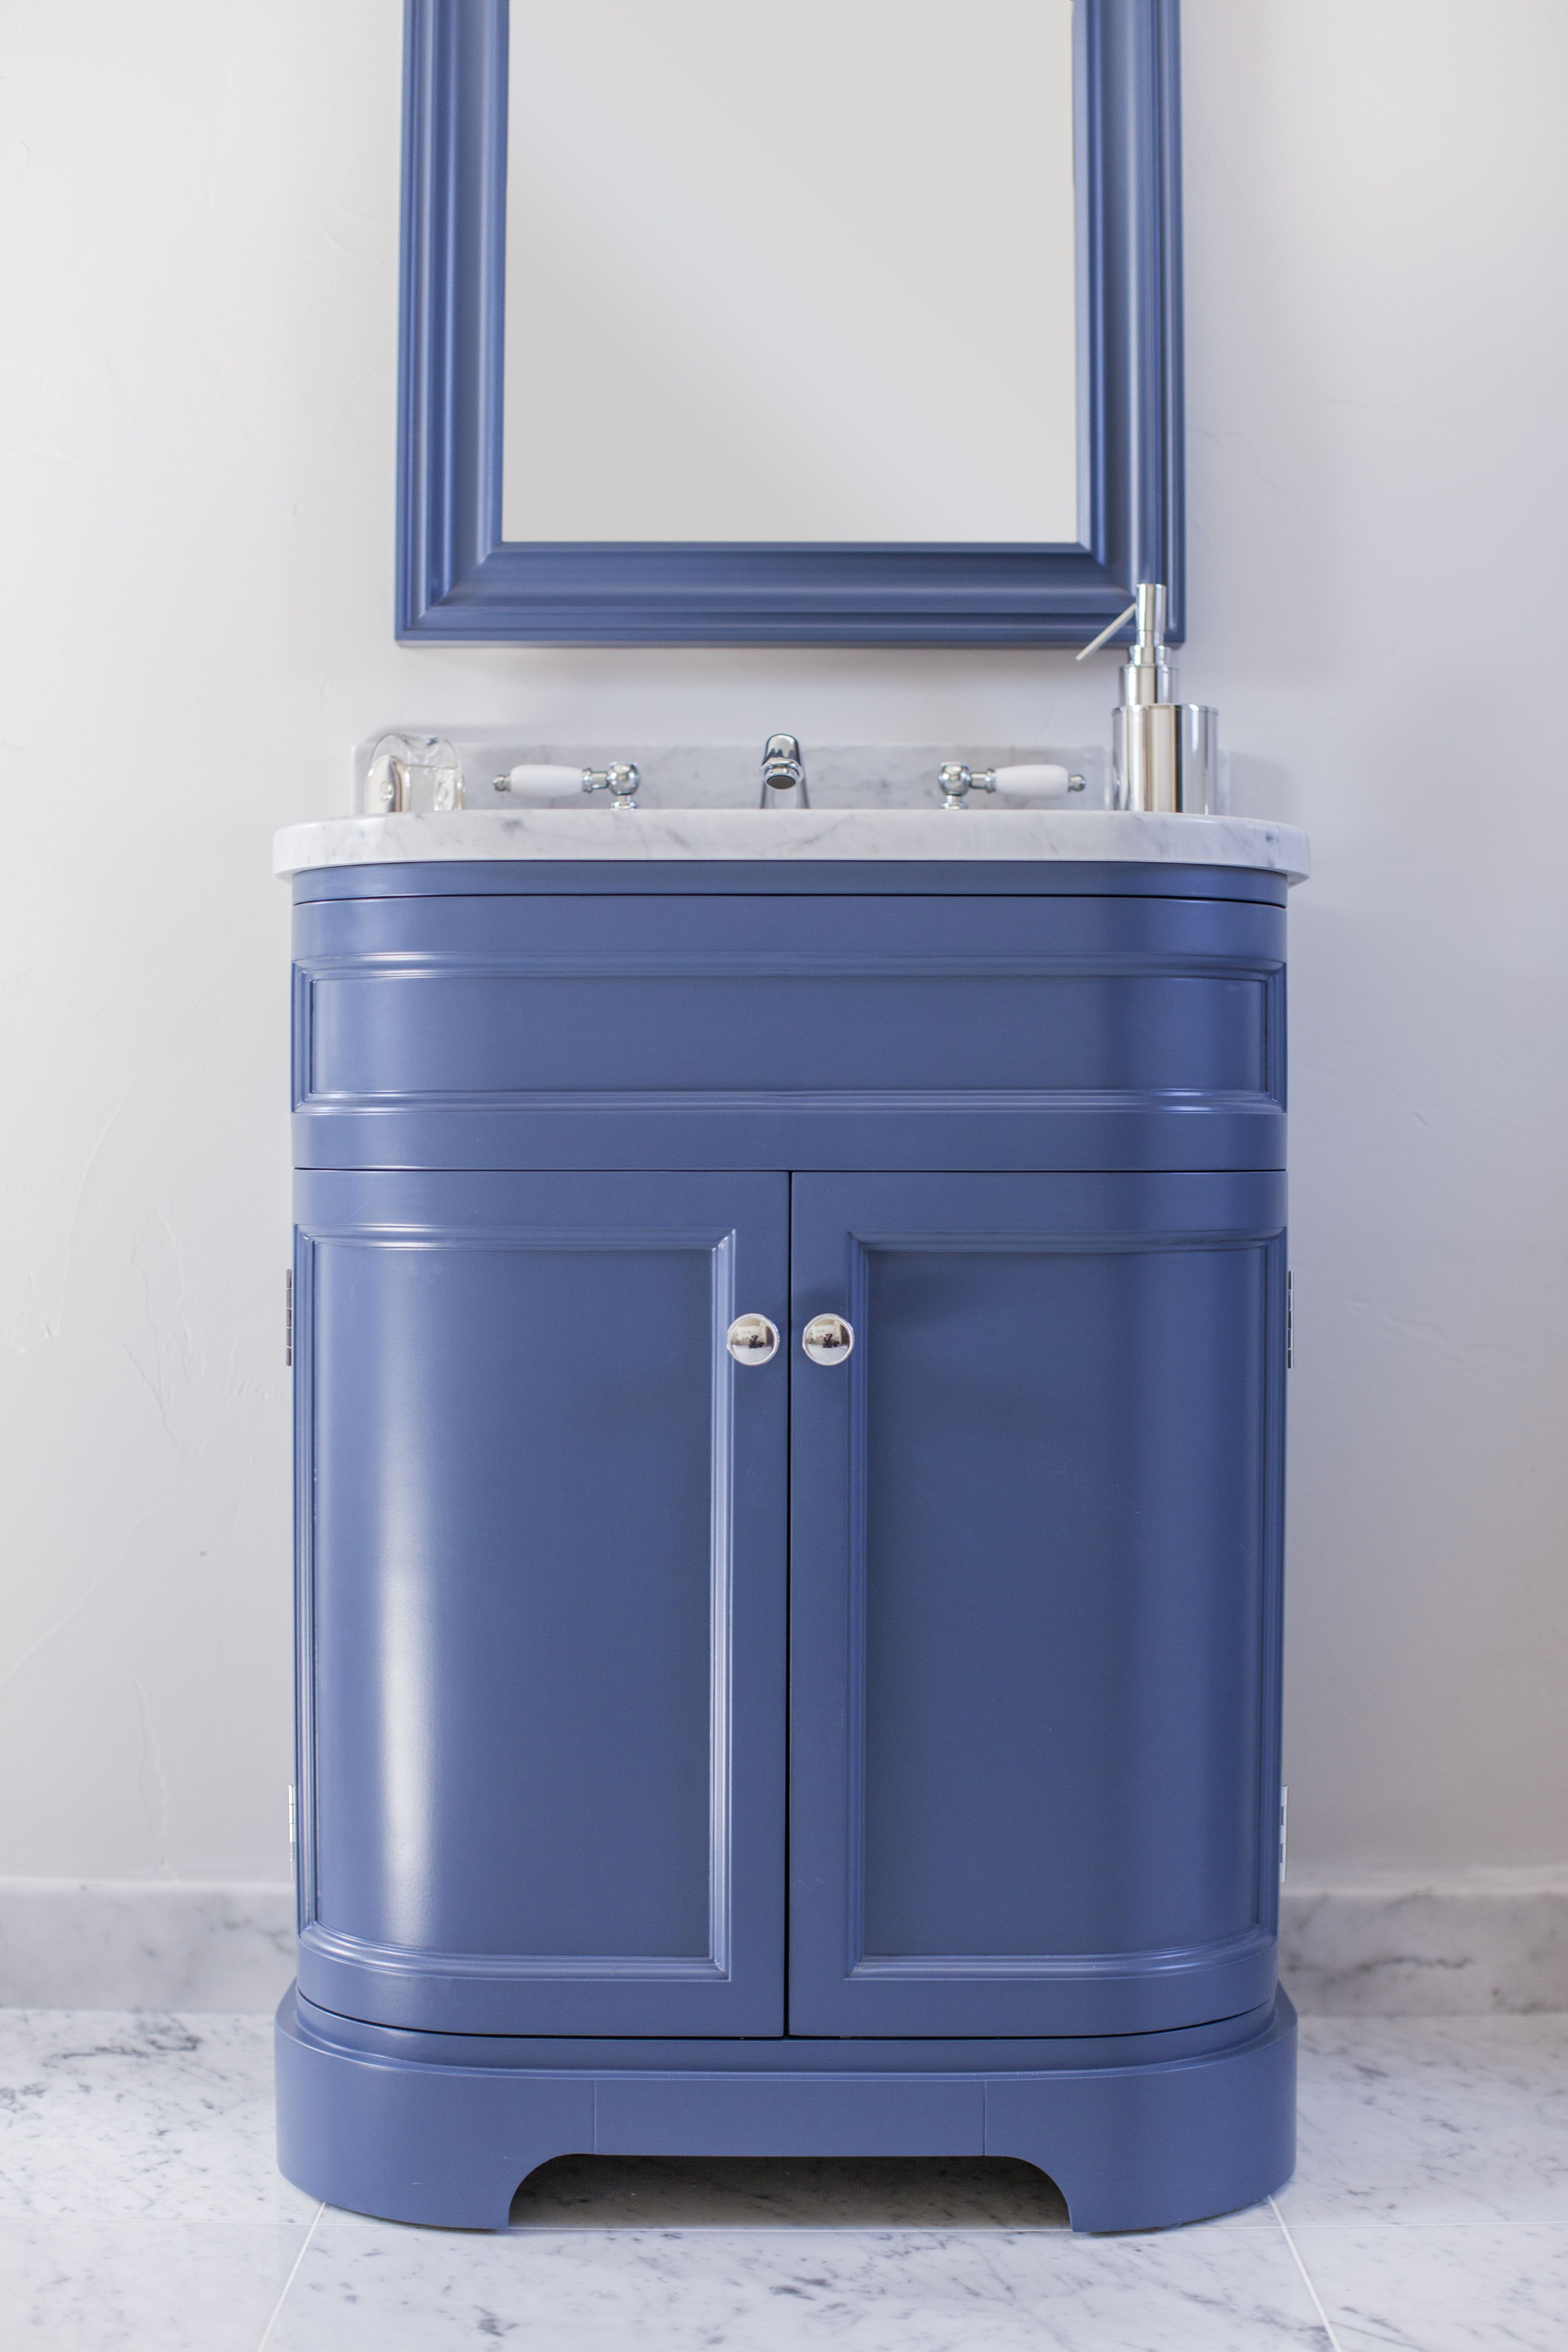 Painted Berwick Vanity Unit in Farrow and Ball Stiffkey Blue with